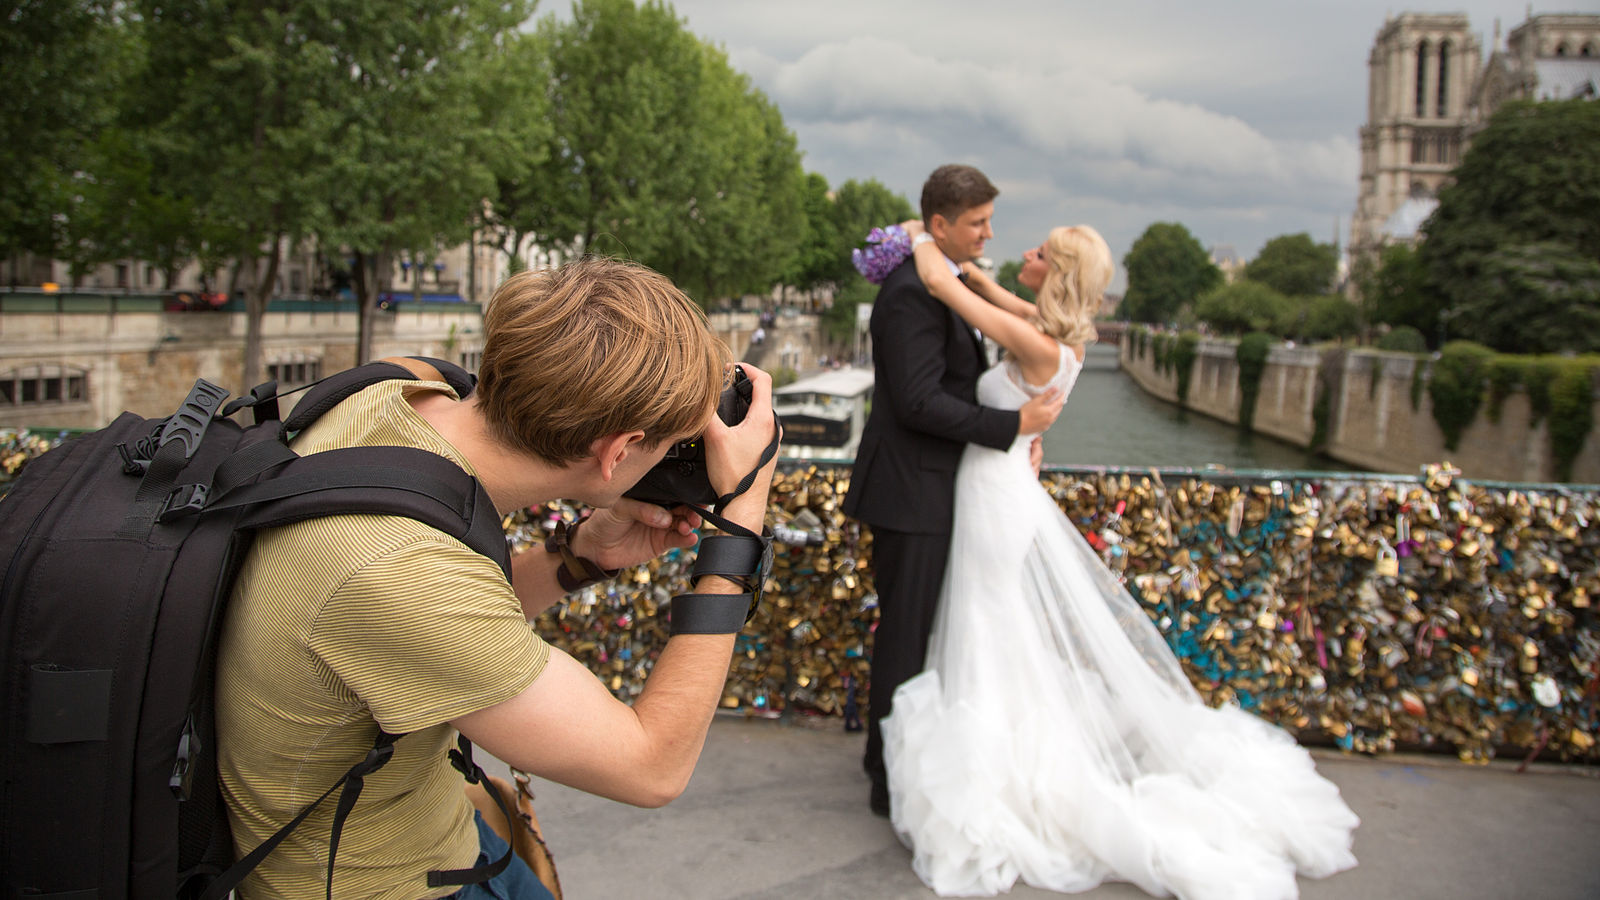 Wedding_Photography_in_Paris,_France.jpg